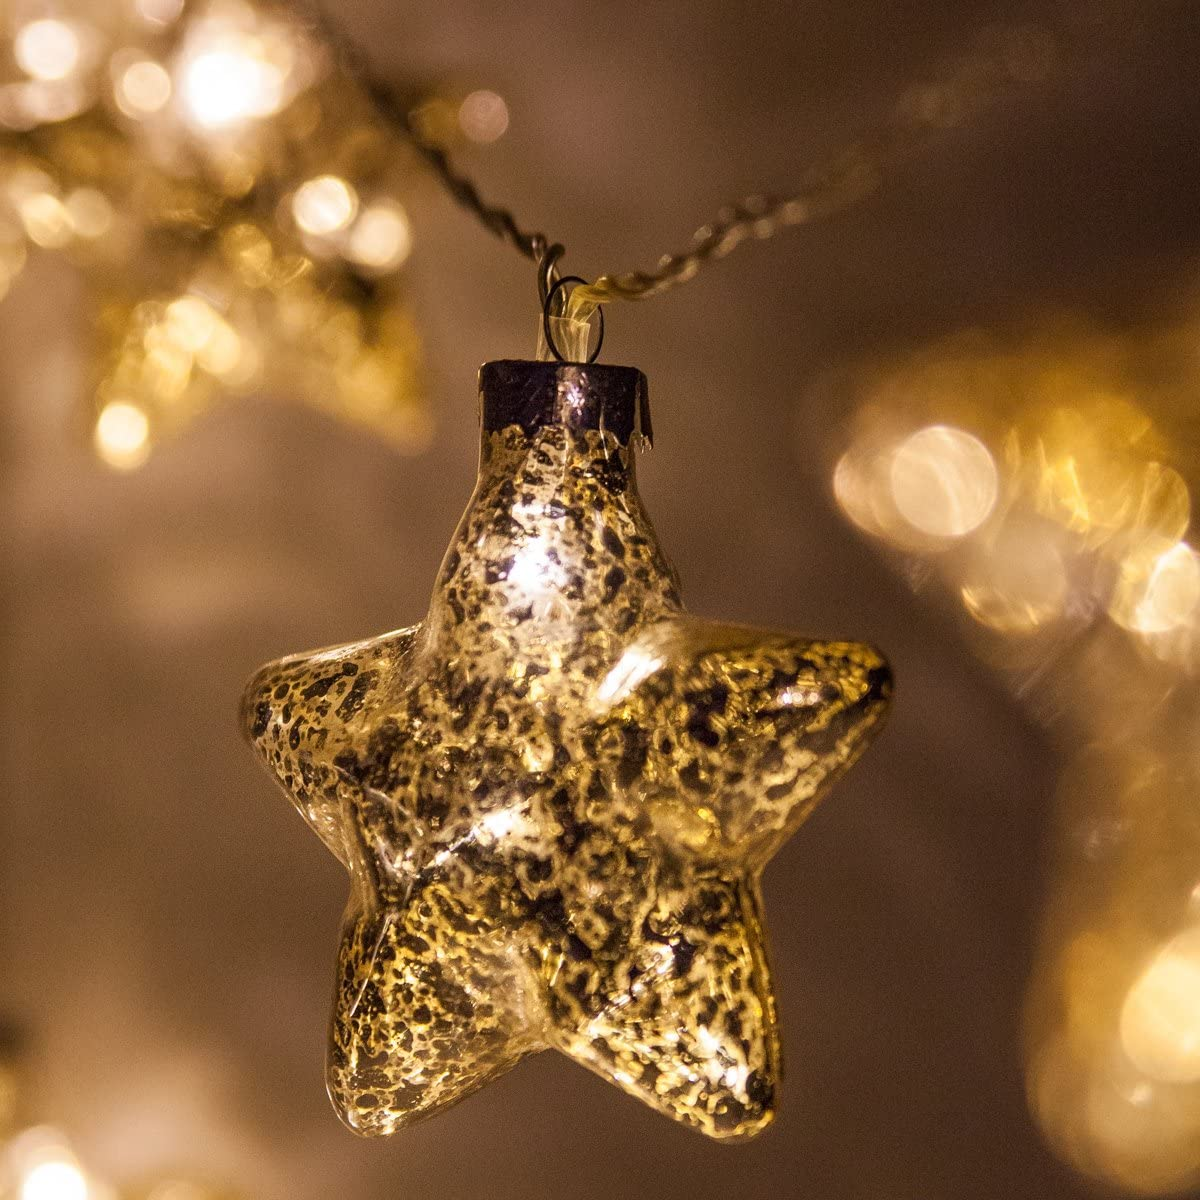 6 Mercury Glass Gold Star Lights Gold Glass Pinecone String Lights Wedding Decorations for Party, LED Lights String, Battery Operated, 10 Warm White LED Lights on Clear Wire 10 Star Lights